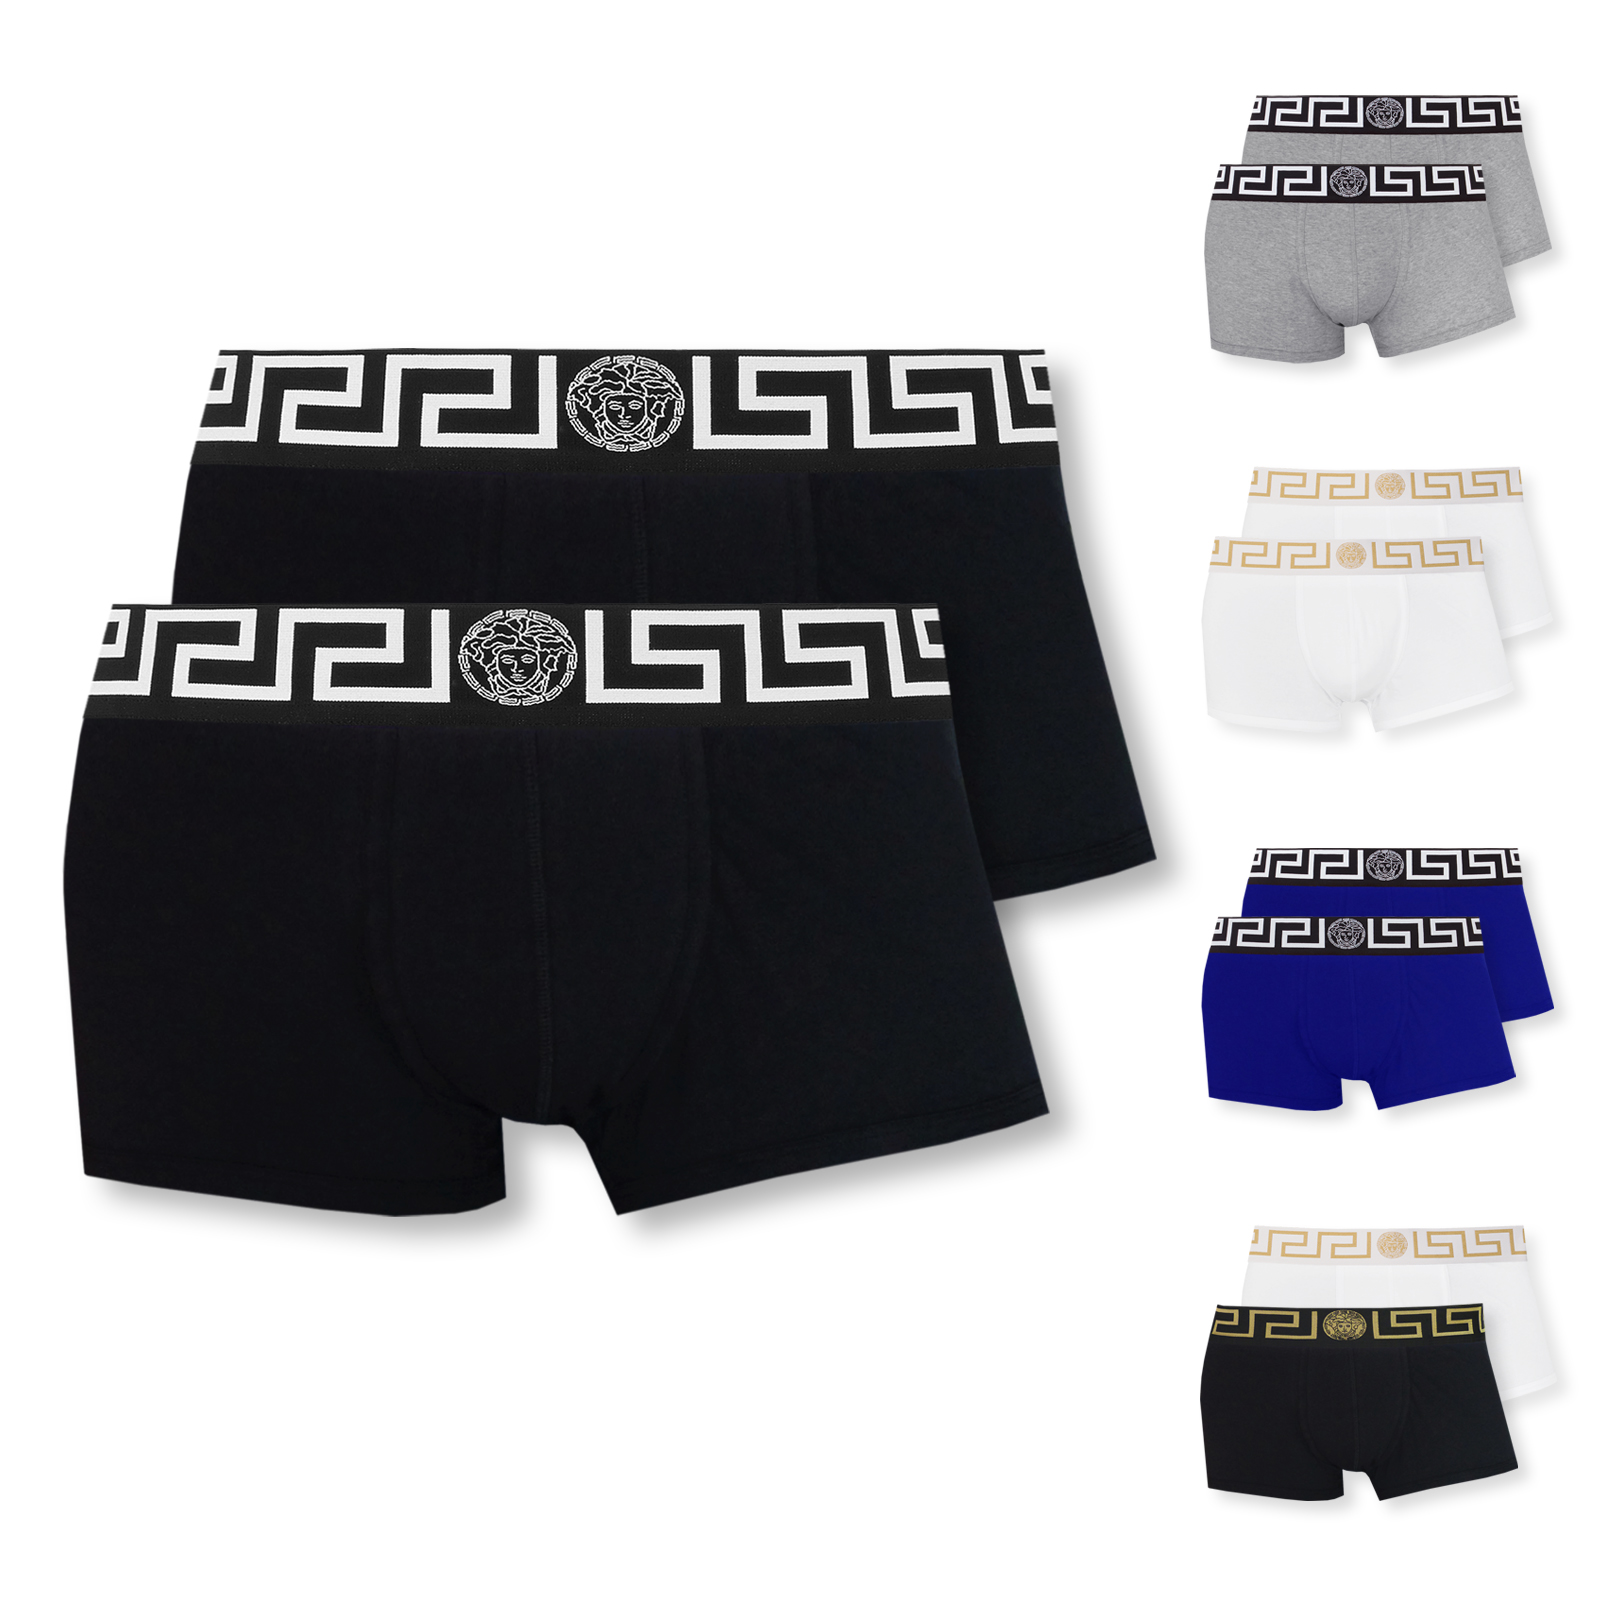 2er Pack Versace Boxershorts Low Rise Trunk Greca M L XL XXL in bianco